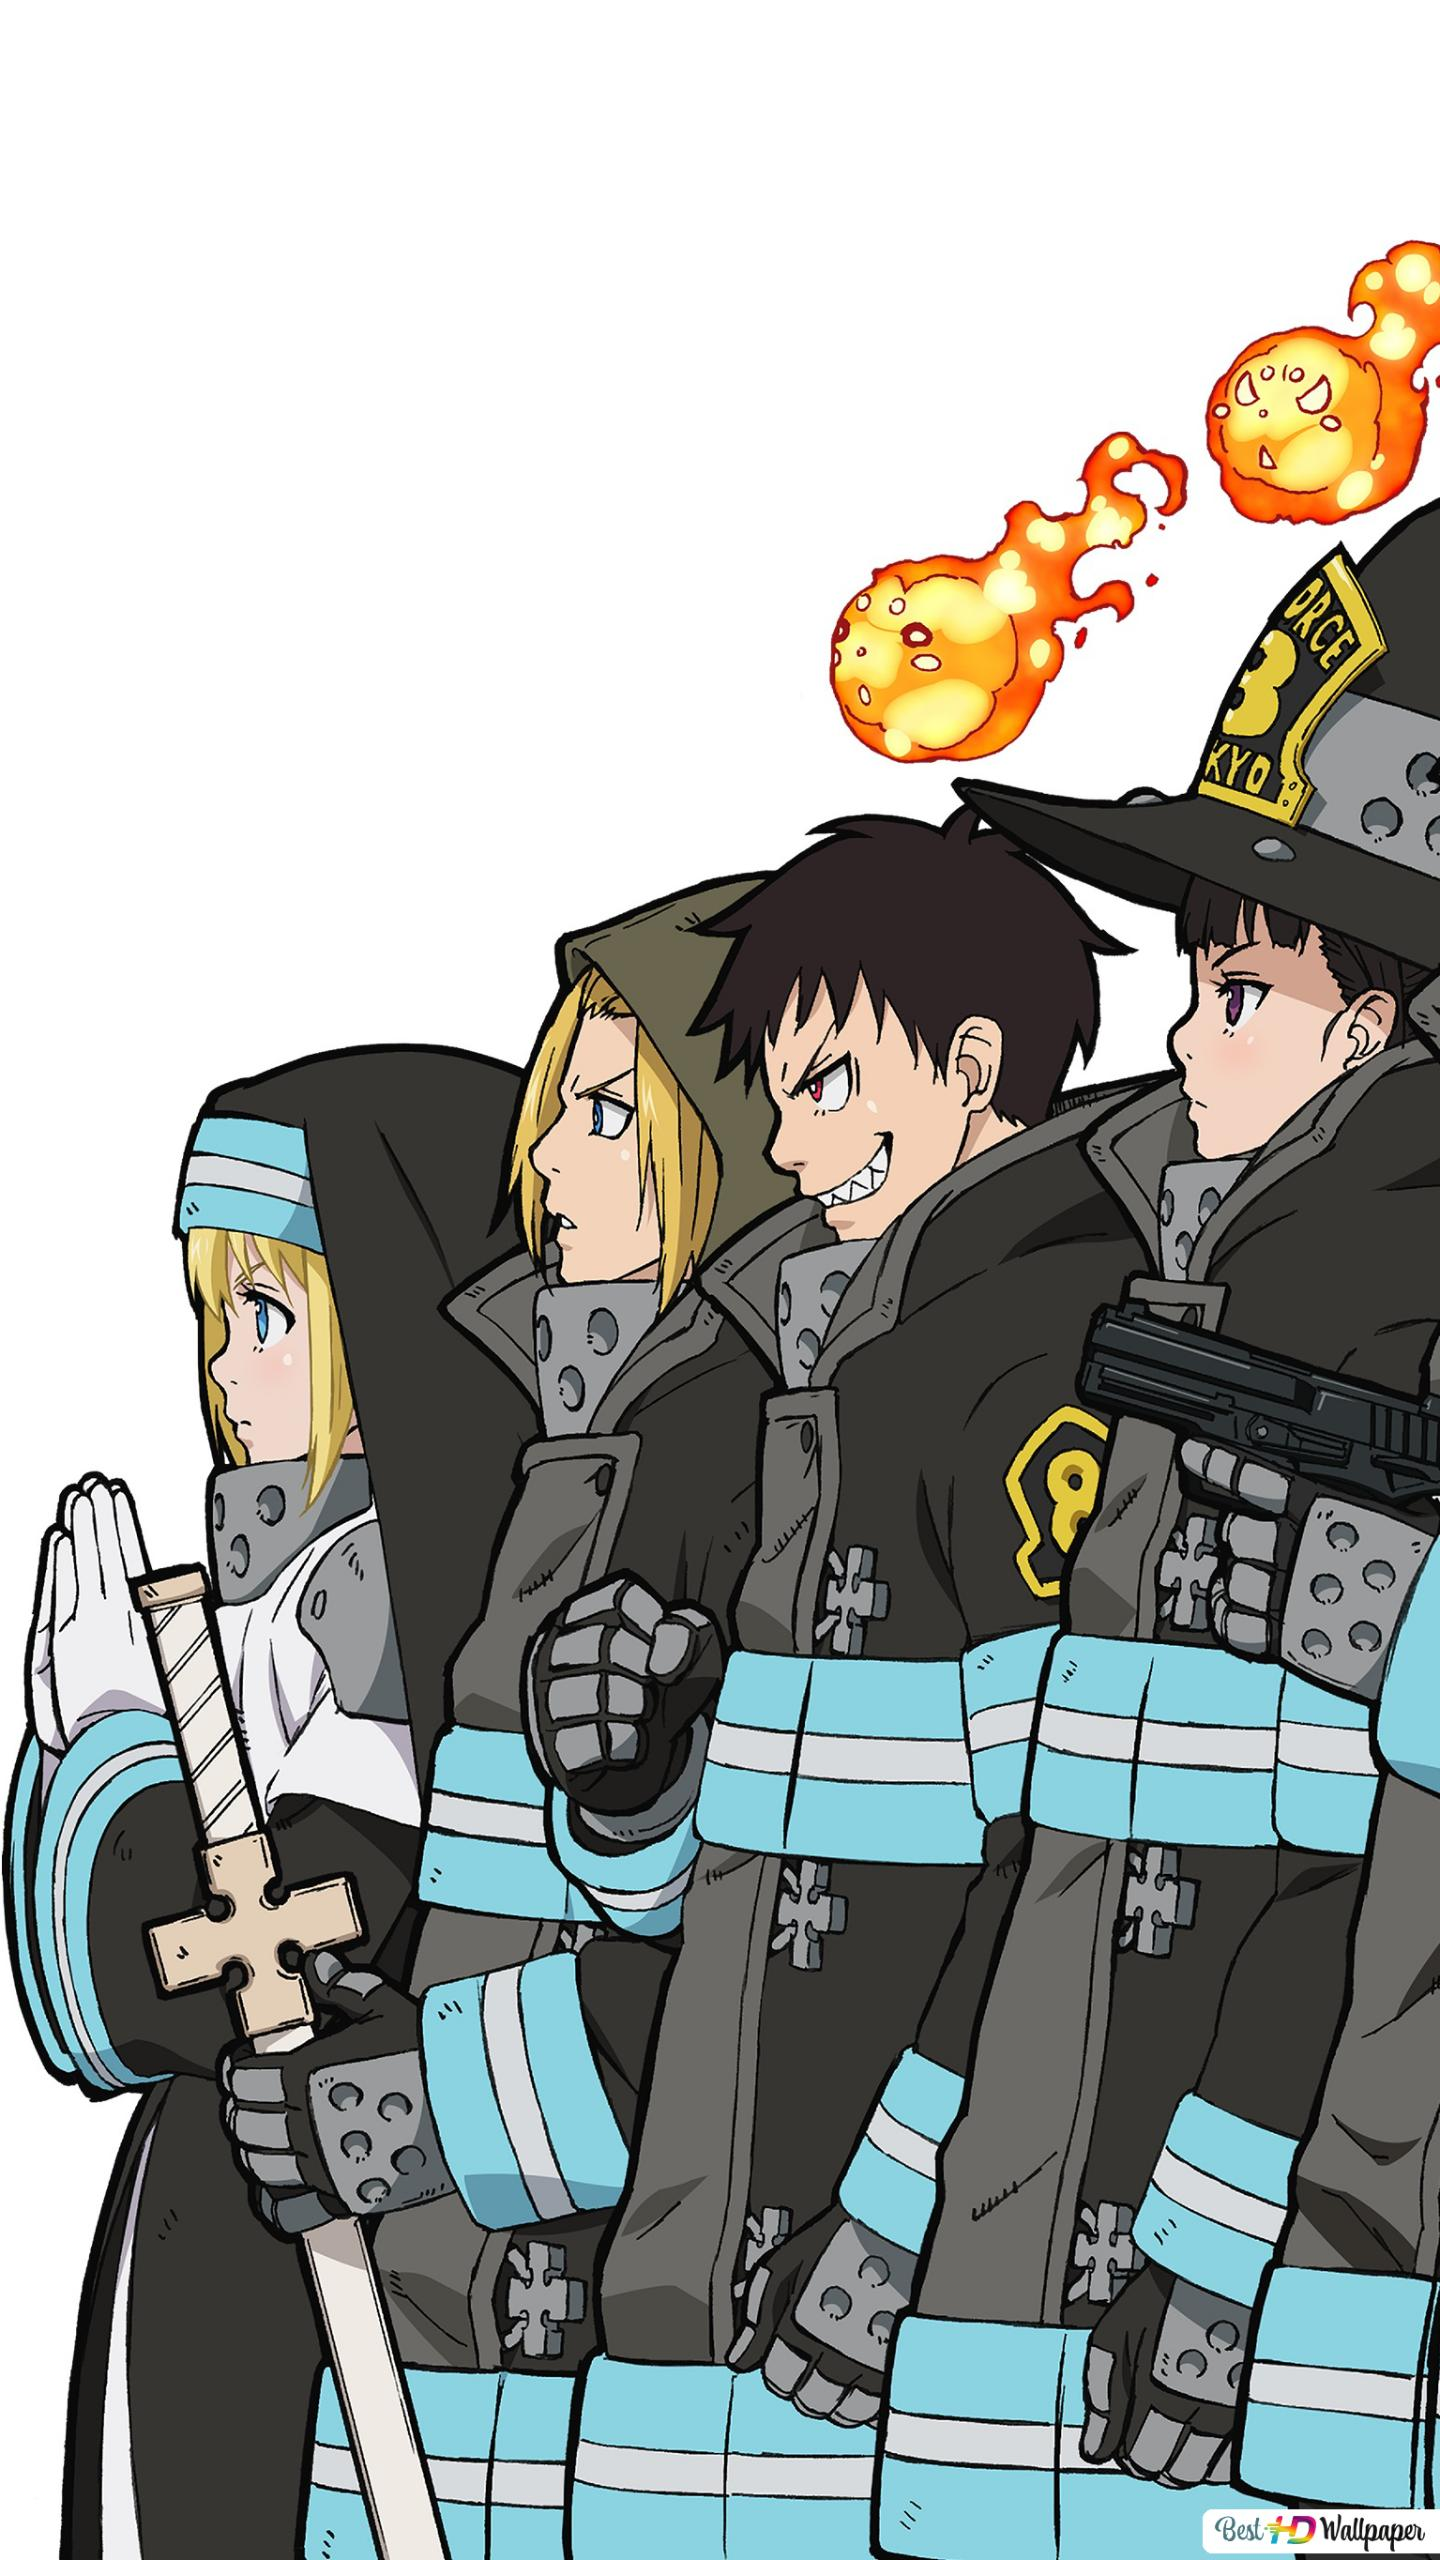 Fire Force Wallpaper Anime Wallpapers Fire force season 2 confirmed for 2020 | manga thrill. fire force wallpaper anime wallpapers